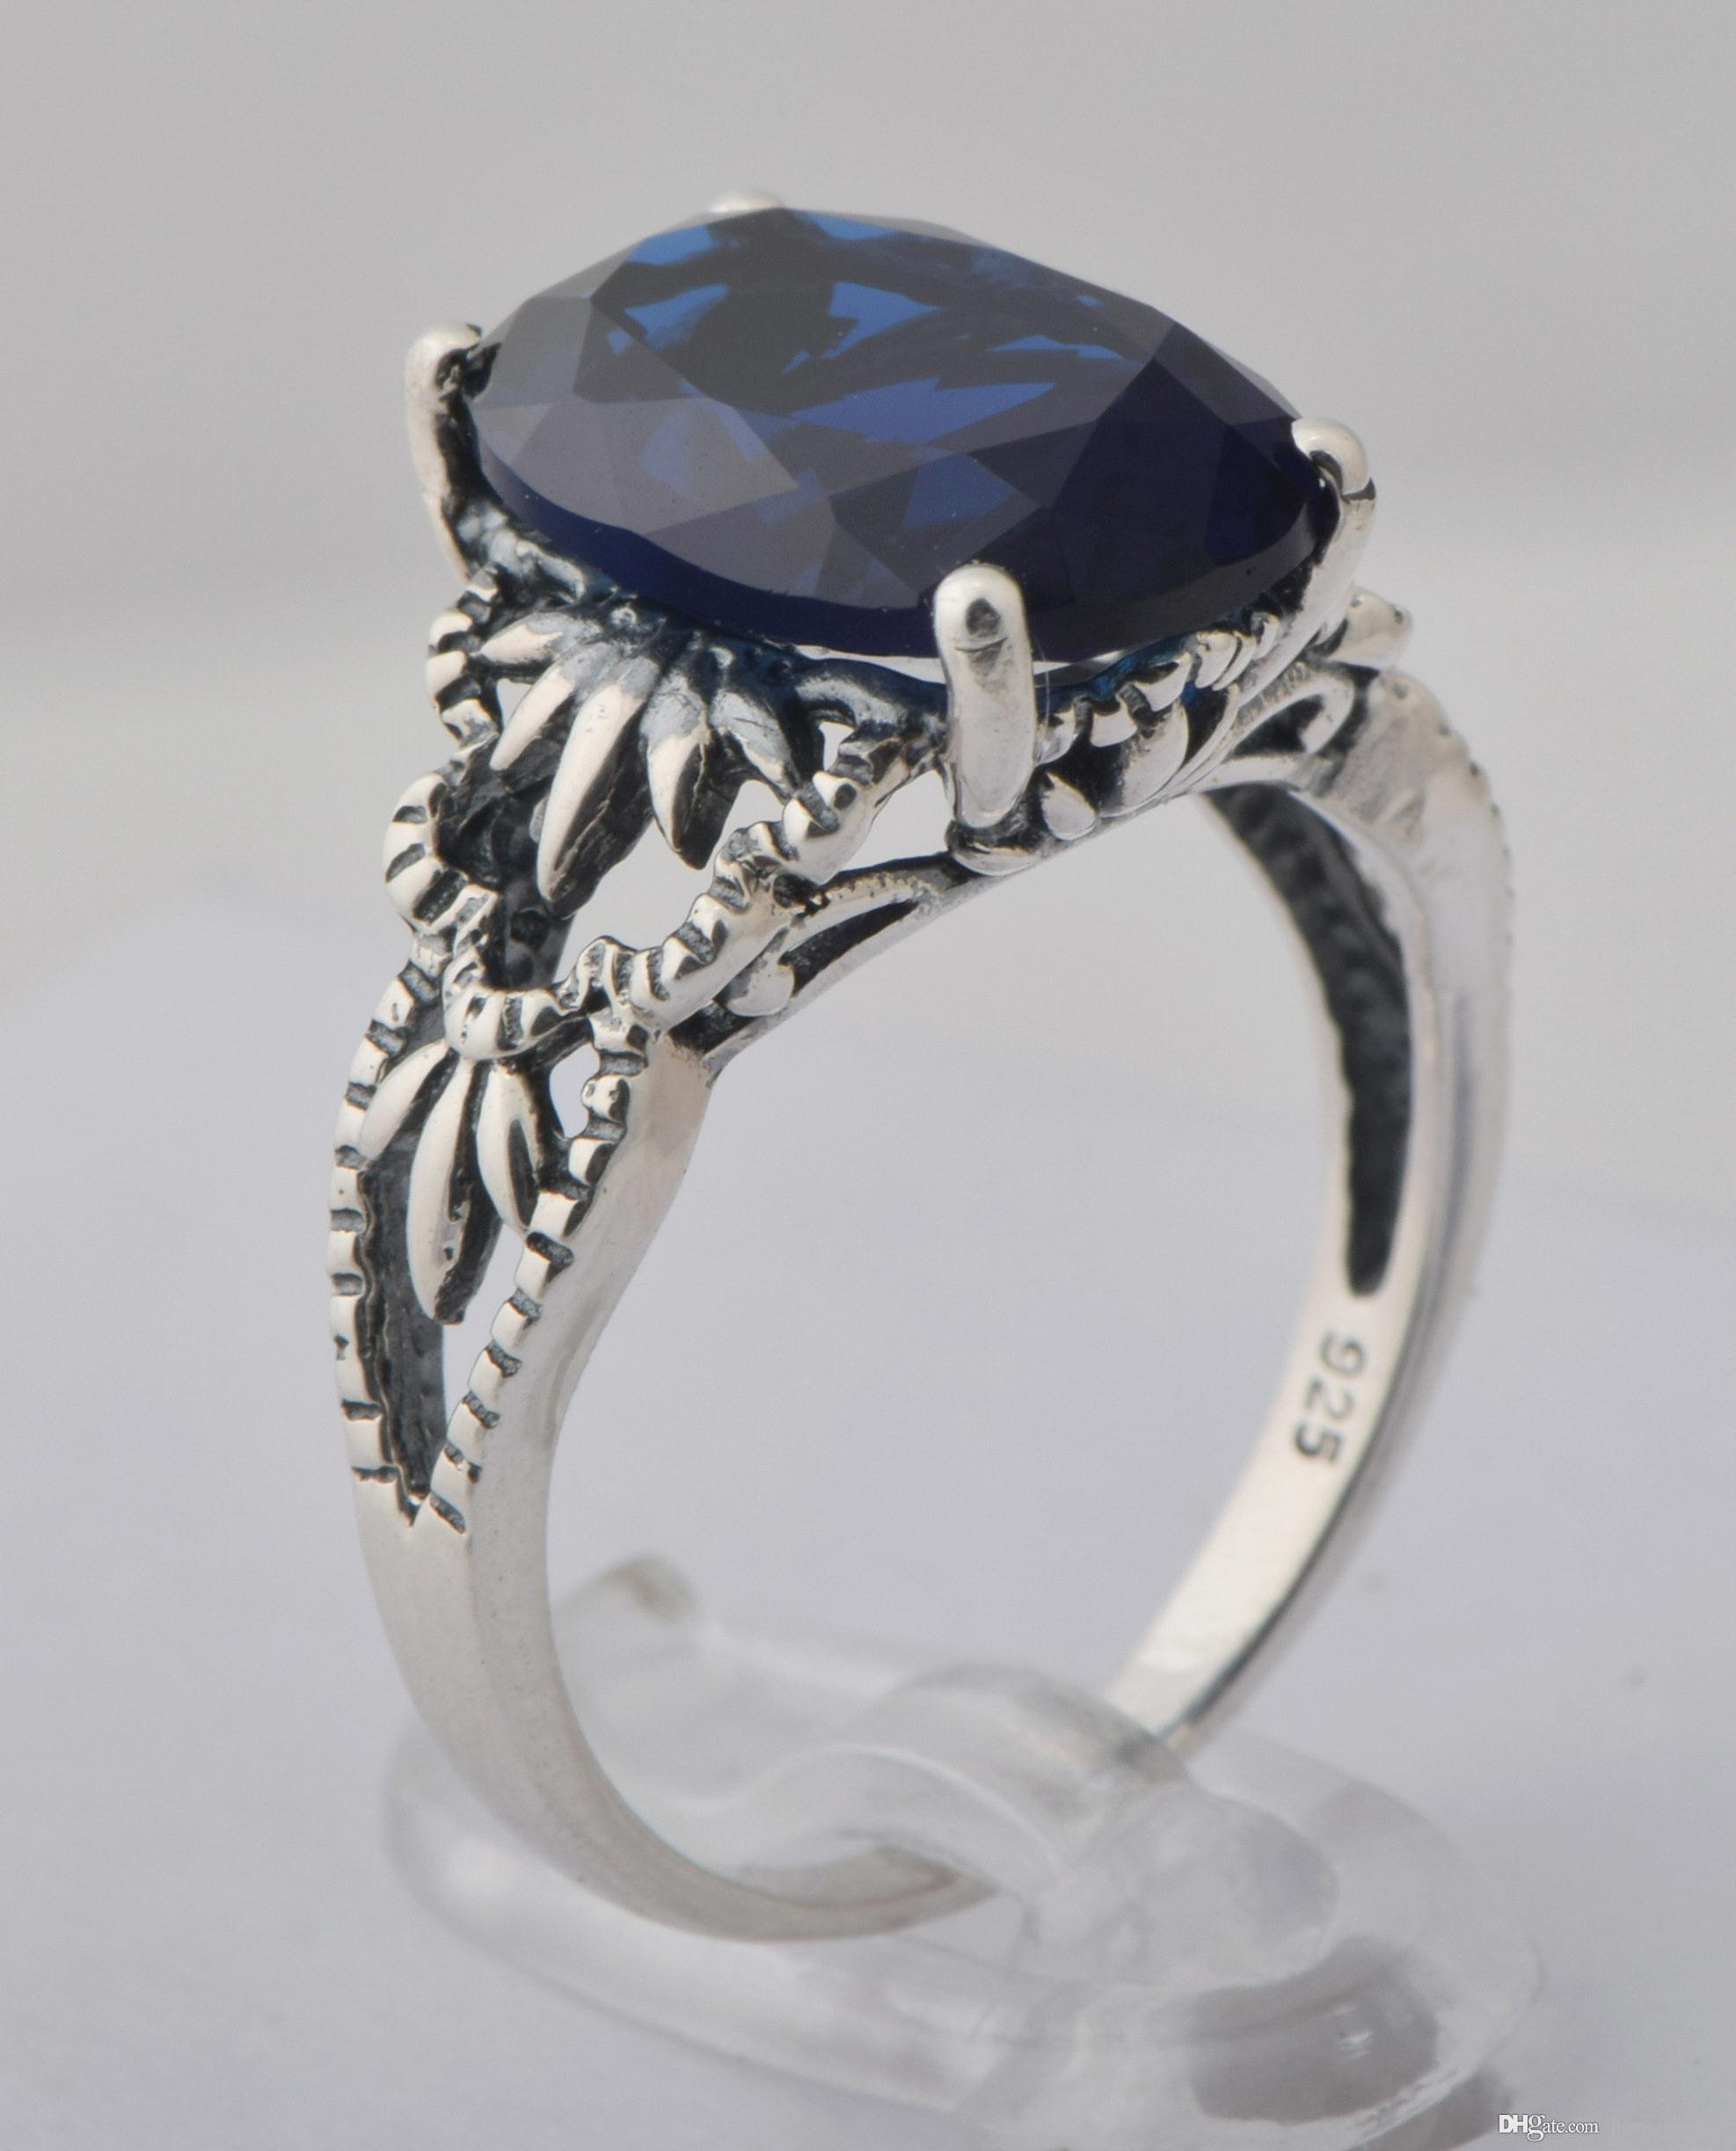 crop rings blue diamond scale garrard shop false upscale subsampling engagement sapphire saffire product marguerite ring and the